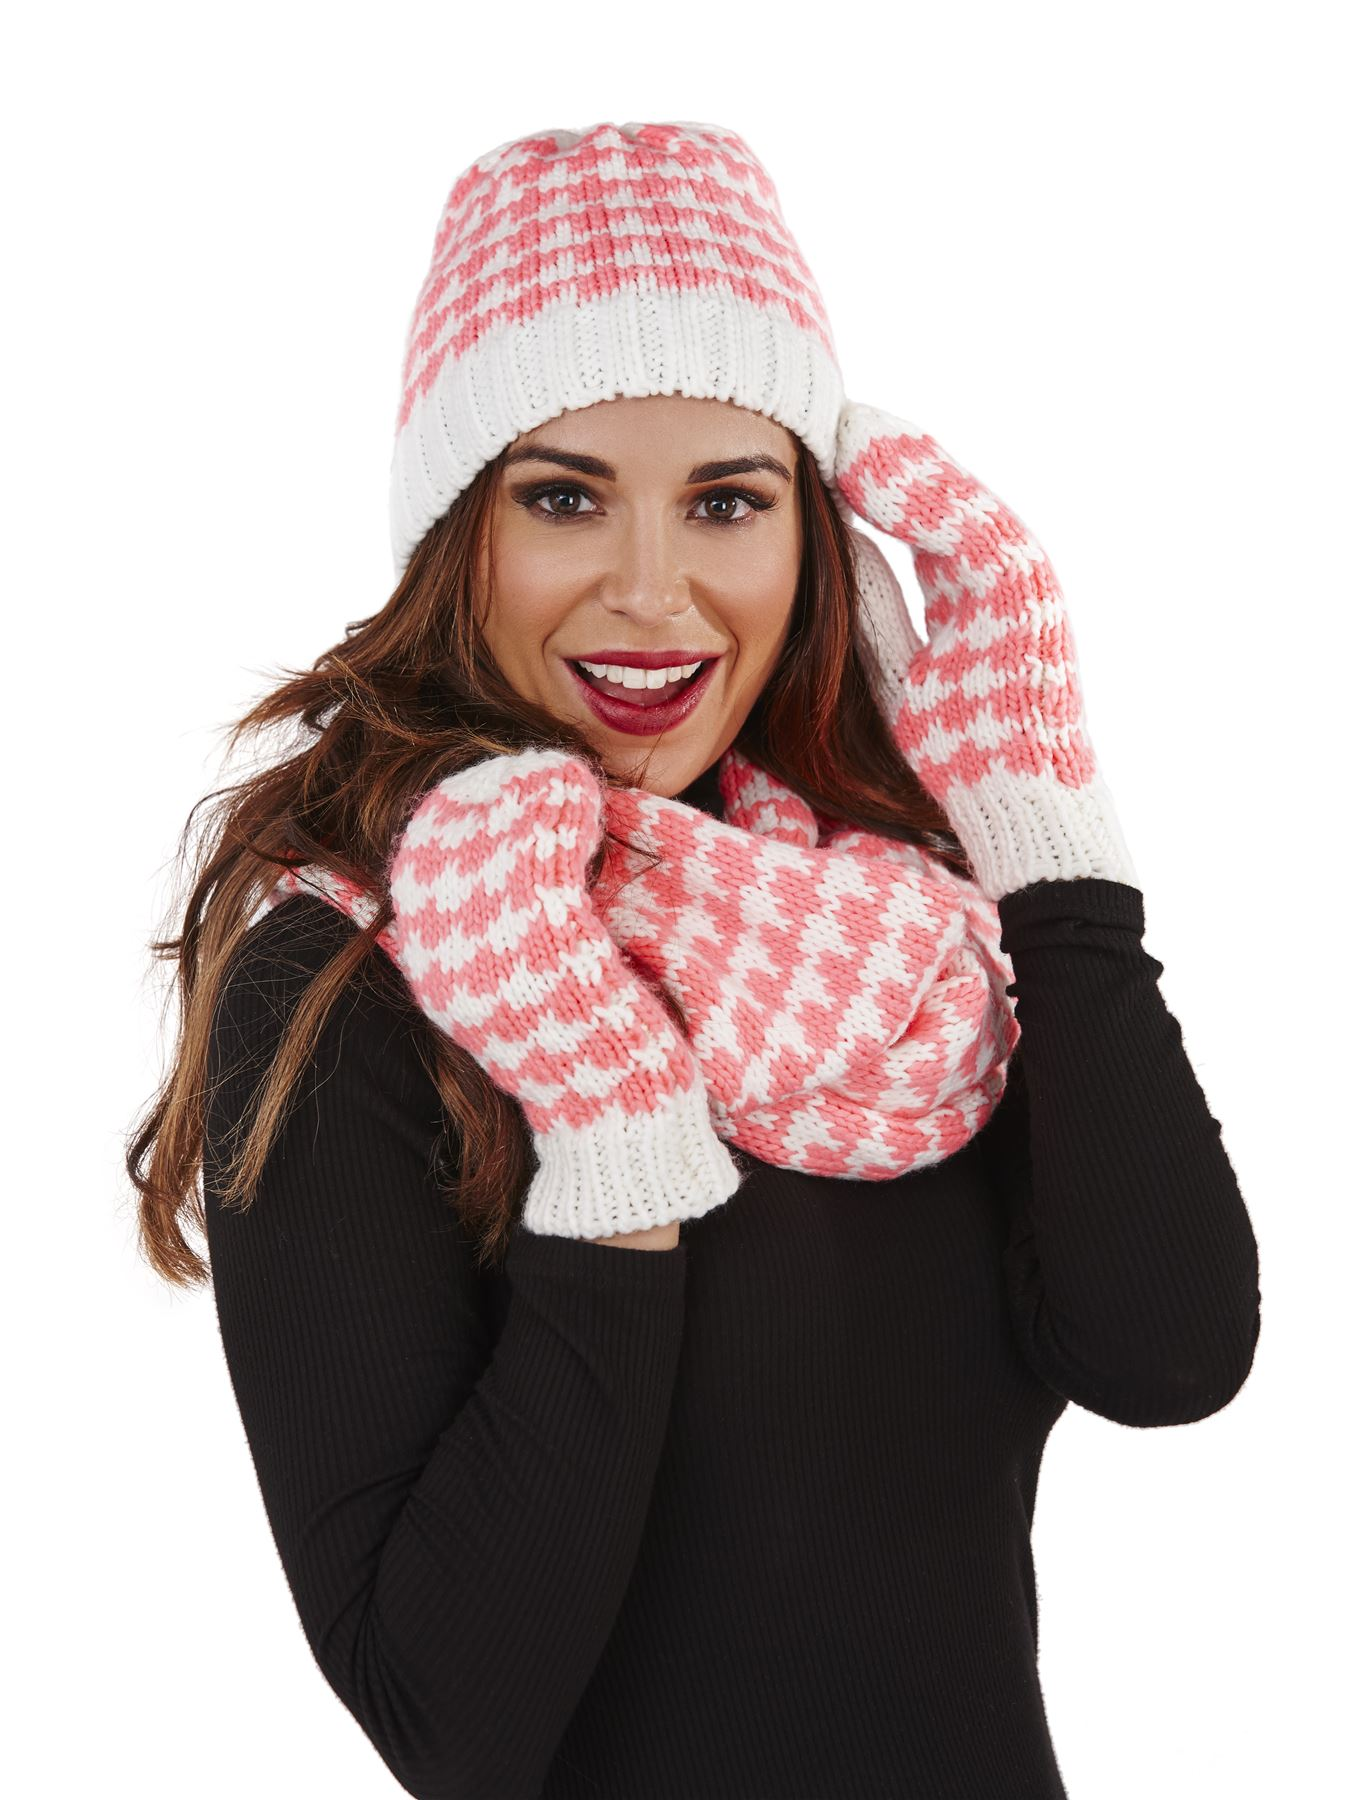 Find great deals on eBay for womens winter hats and gloves. Shop with confidence.